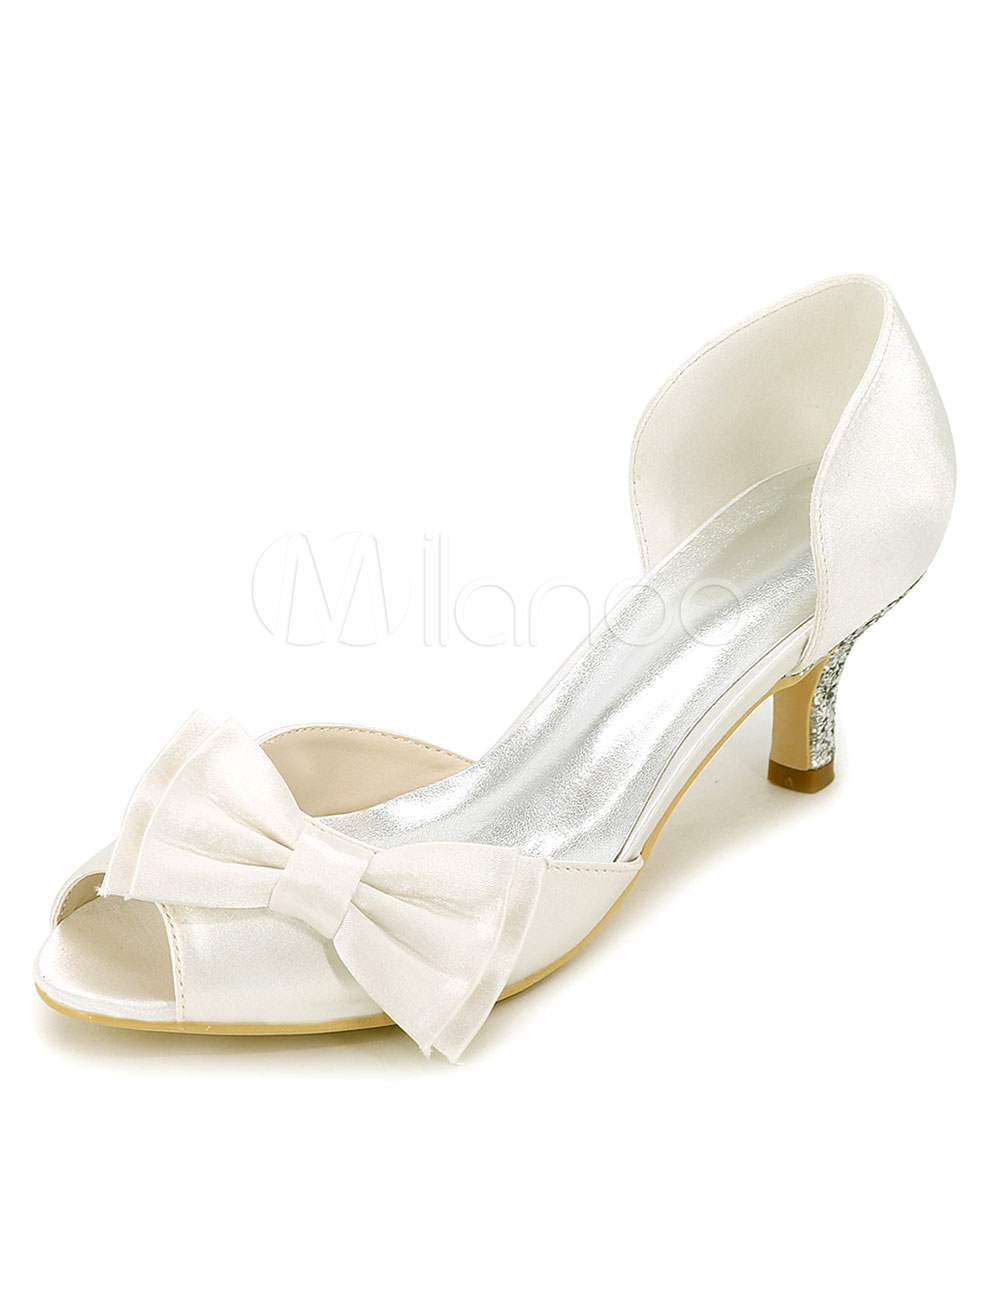 Buy Ivory Wedding Shoes Satin Kitten Heel Pumps Bow Peep Toe Bridal Shoes for $47.49 in Milanoo store